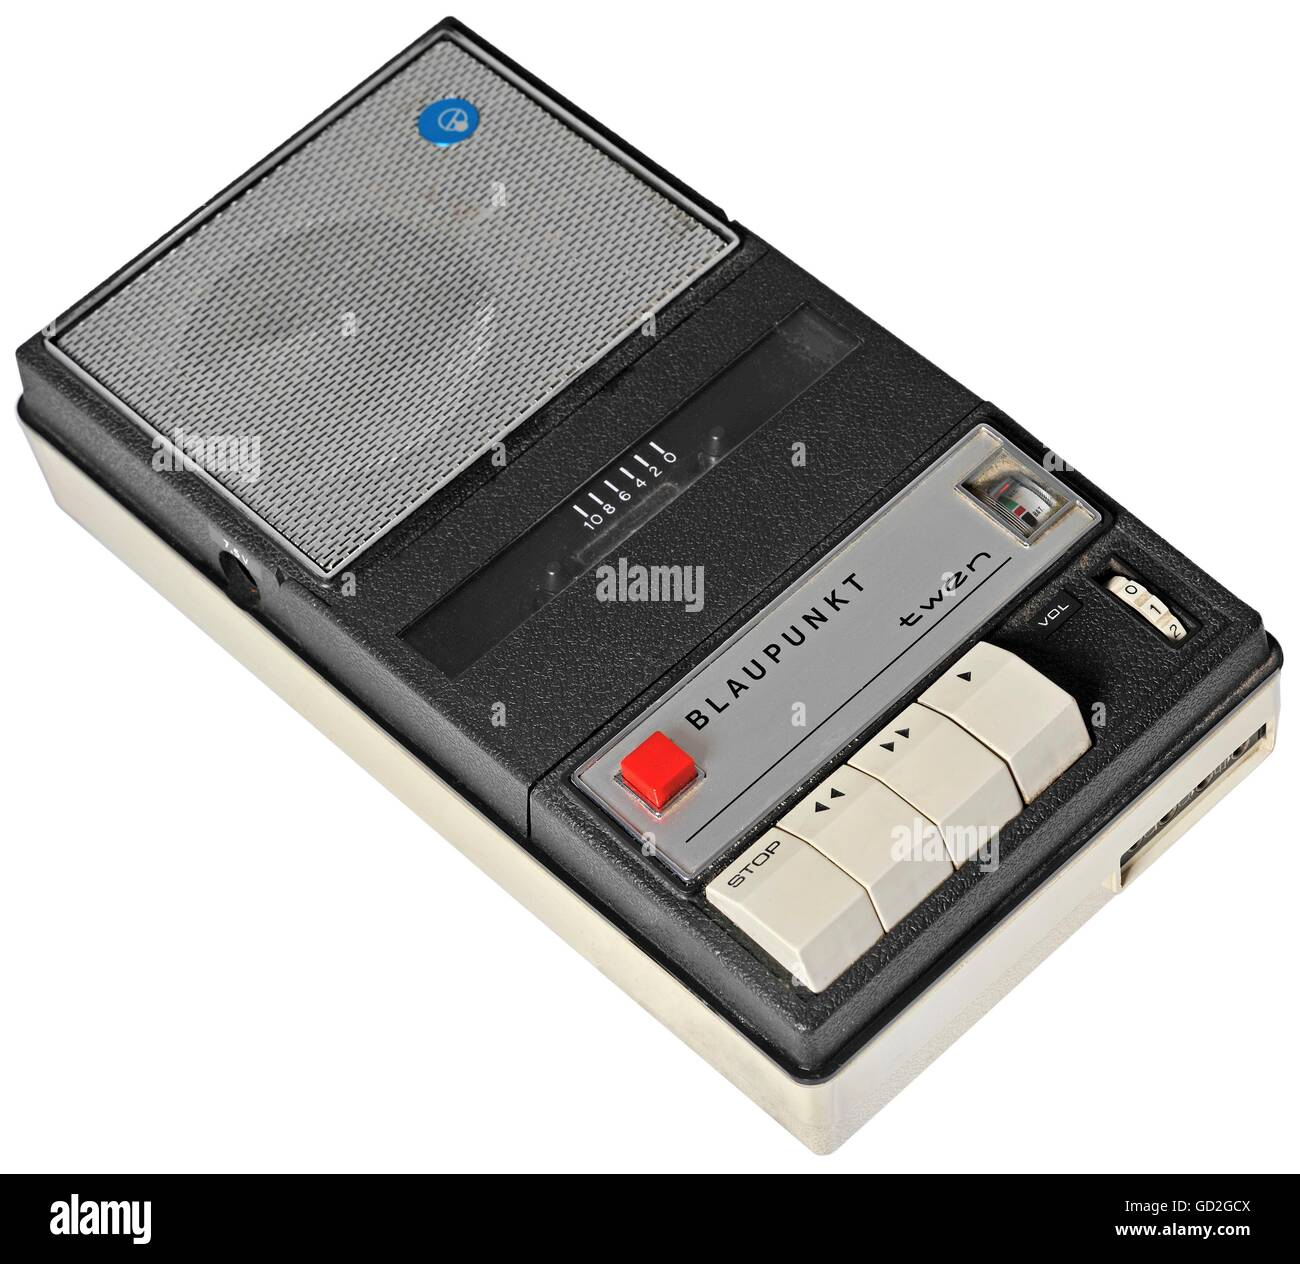 technics, tape recorder, cassette tape recorder, Blaupunkt 'twen', for compact cassette, for the recording - Stock Image